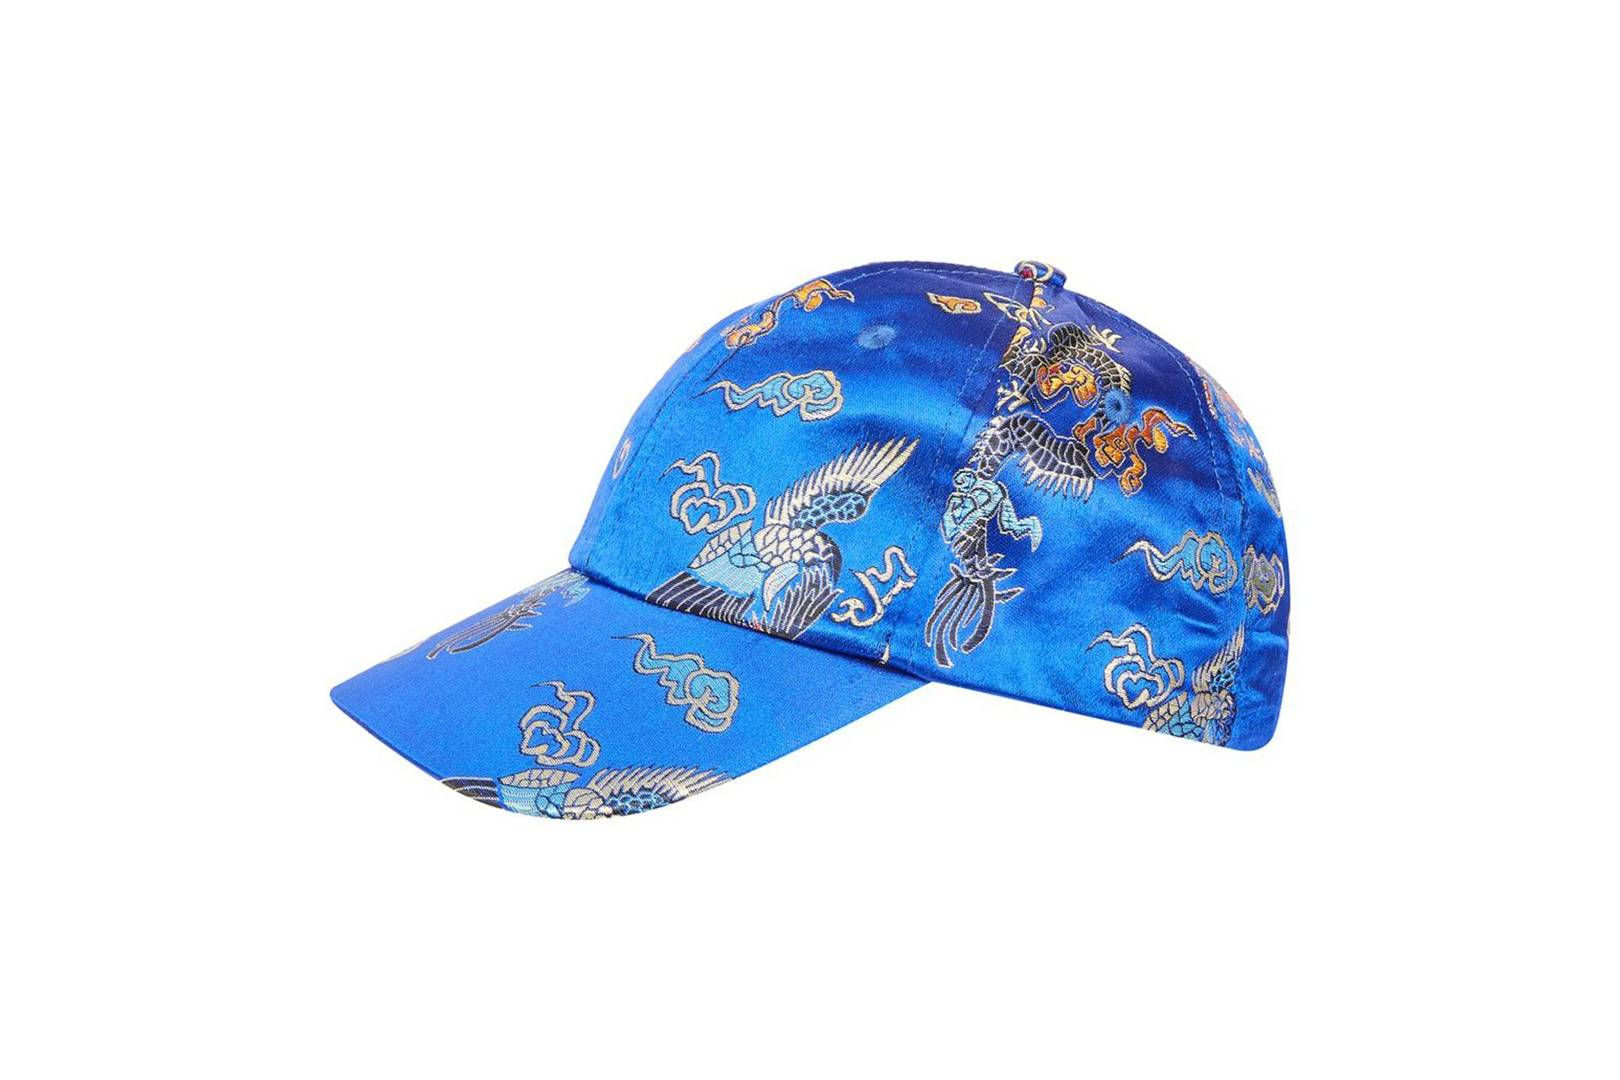 dbcbde55ca861 All About The Baseball Cap - How To Wear Now Best To Buy